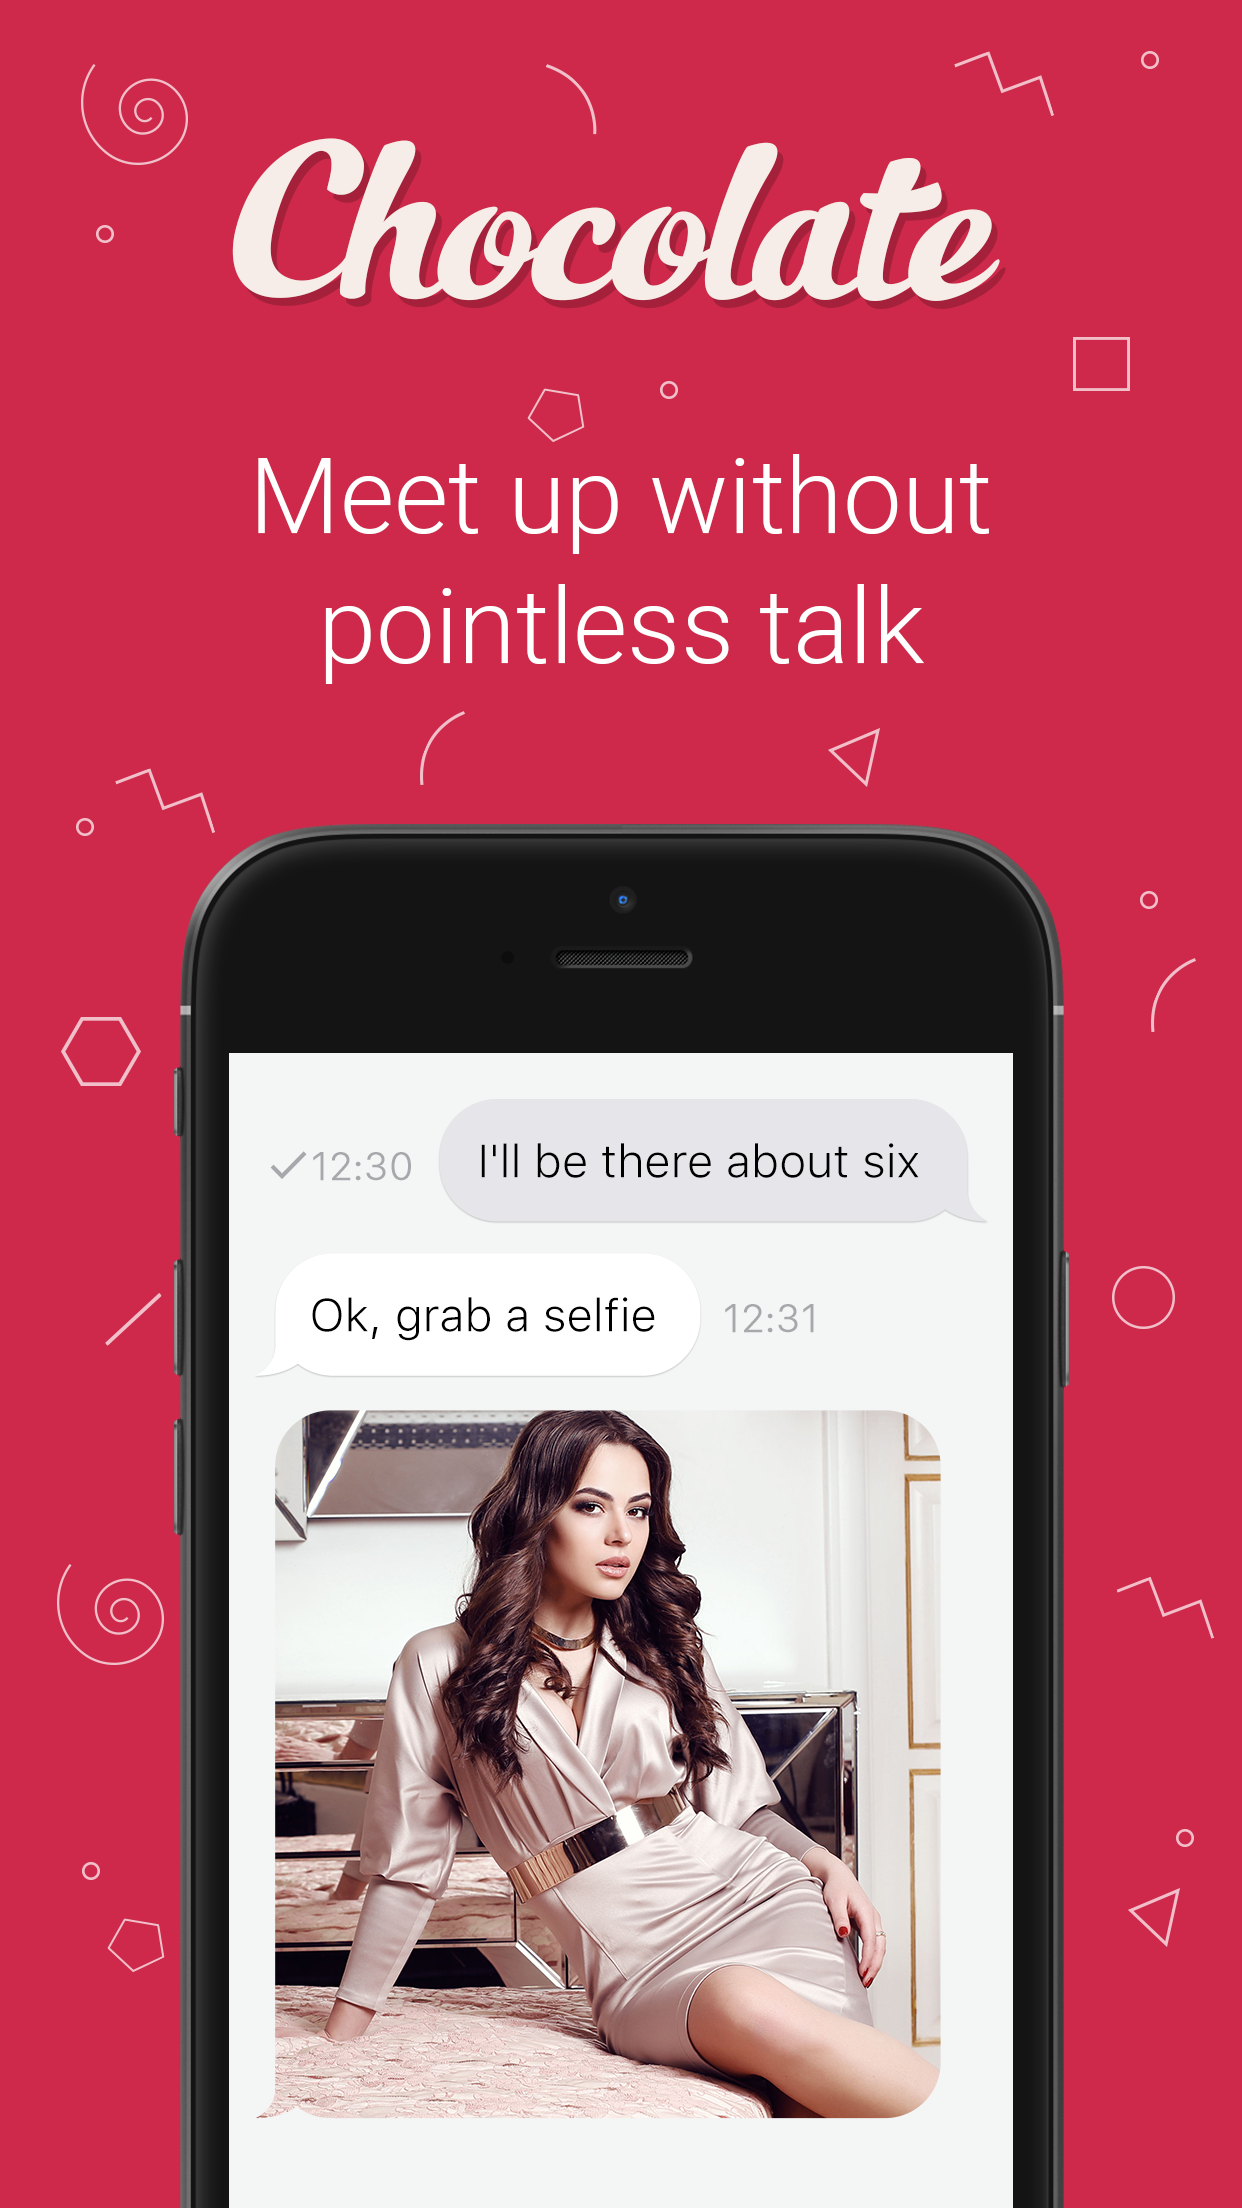 Chocolate: Online dating app for casual encounters